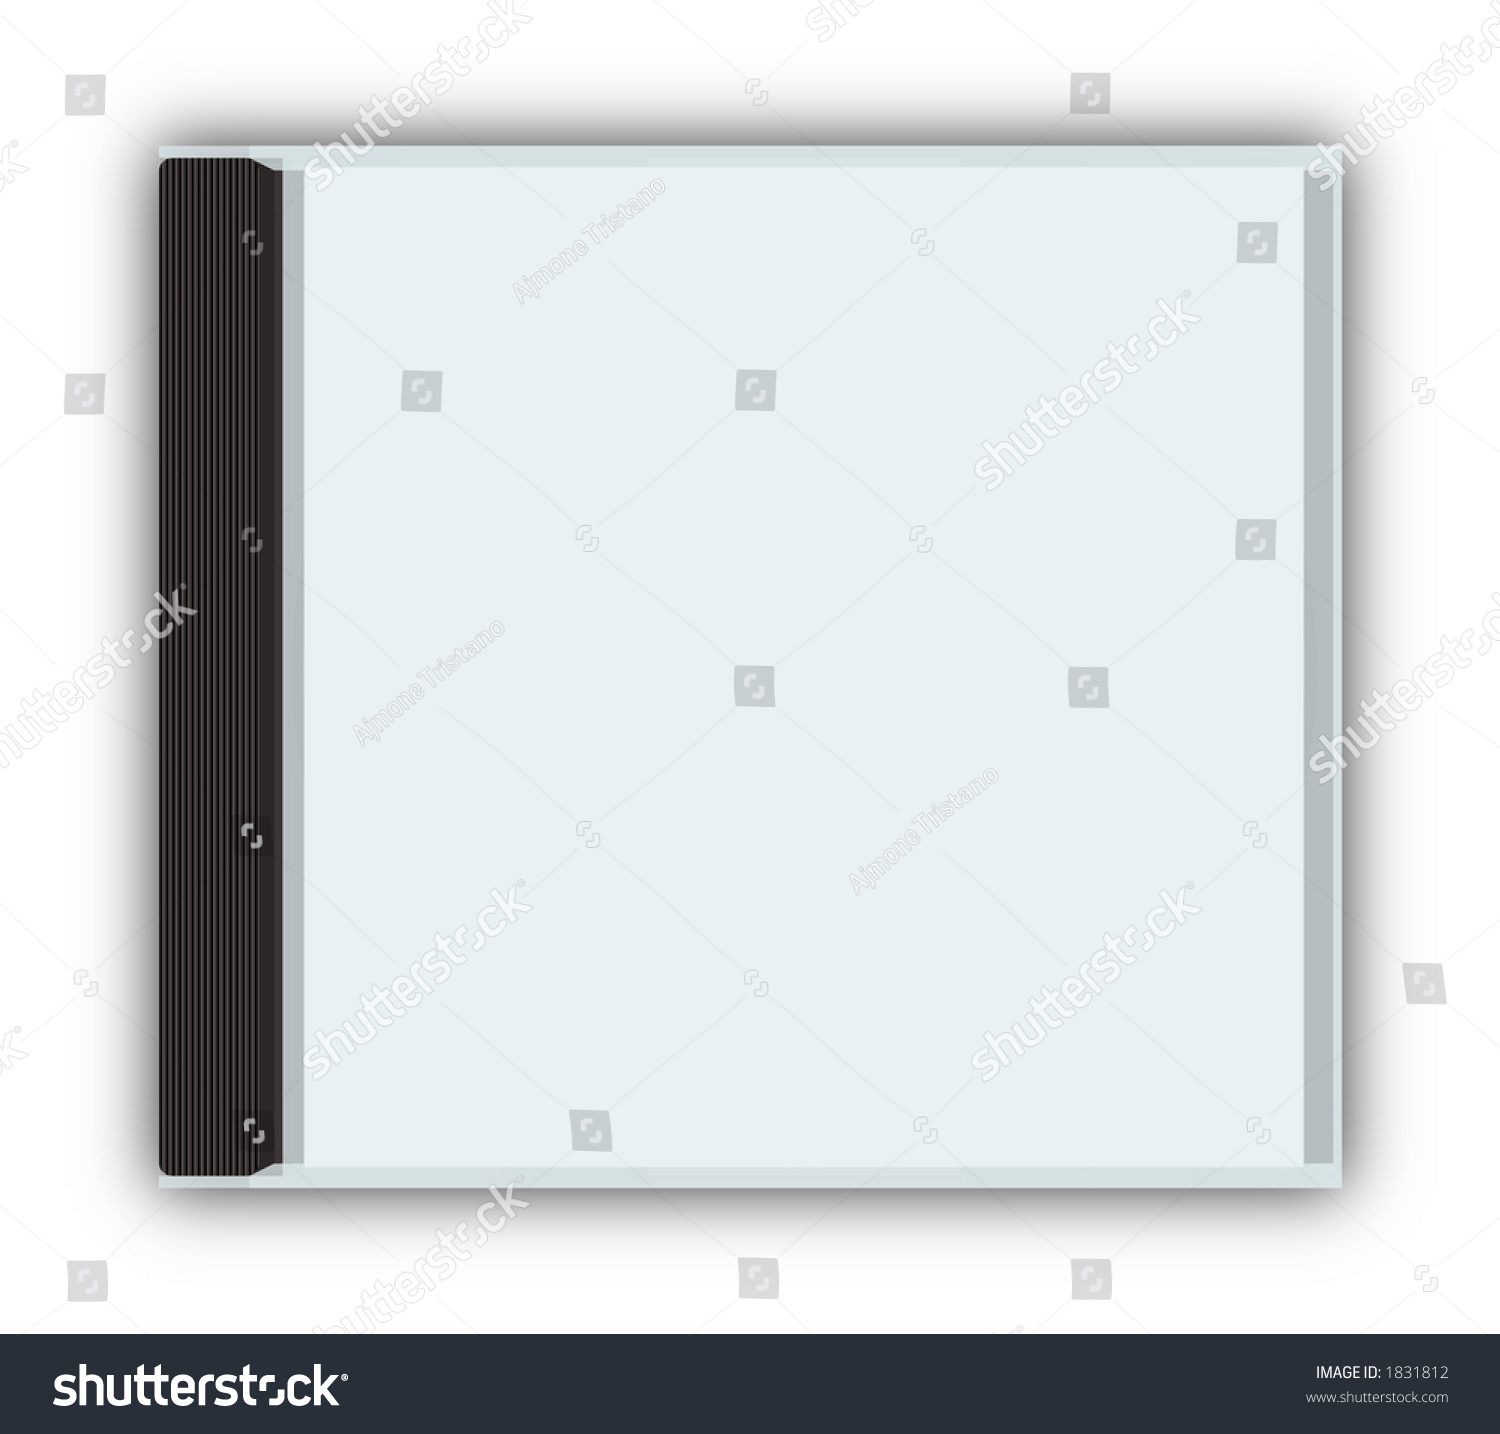 cddvd closed jewel case template with stock illustration 1831812 shutterstock. Black Bedroom Furniture Sets. Home Design Ideas